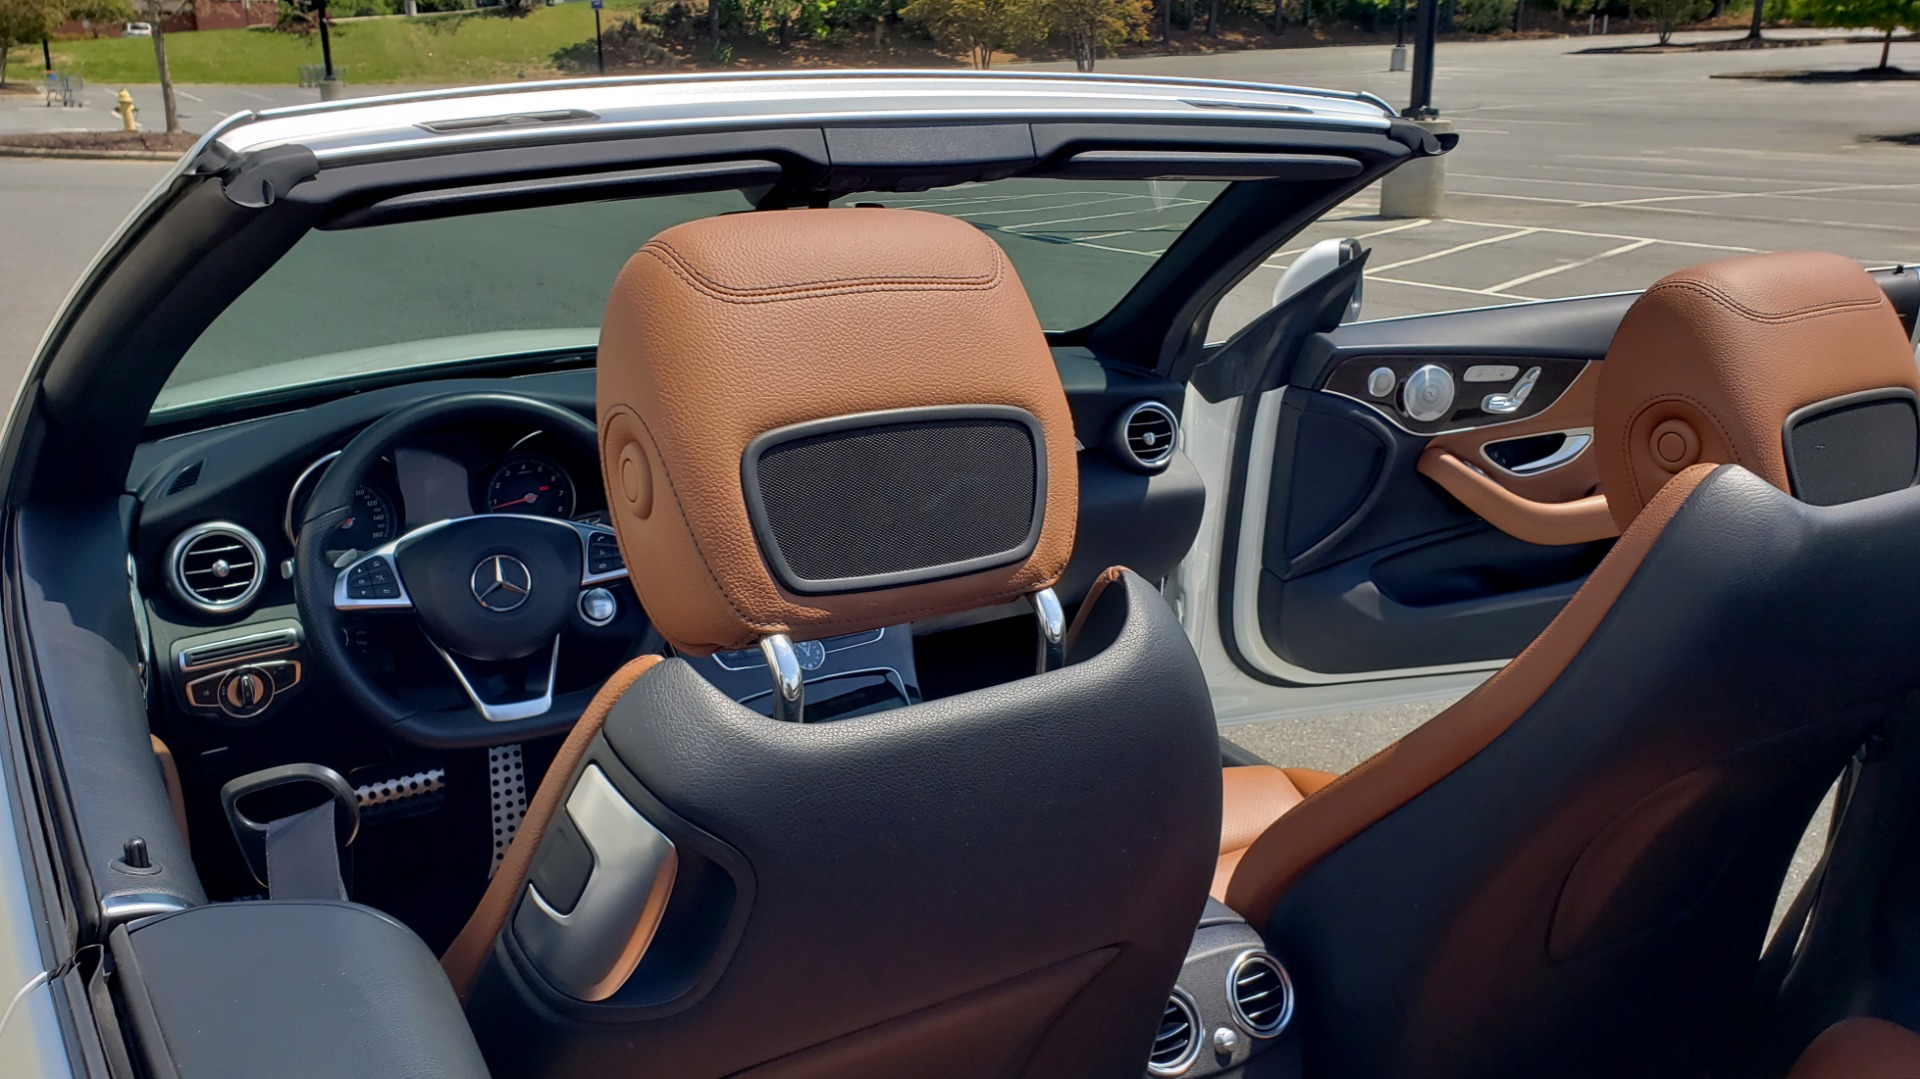 Used 2018 Mercedes-Benz C-CLASS C 300 CABRIOLET PREMIUM / AWD / BURMESTER SND / APPLE / REARVIEW for sale $44,995 at Formula Imports in Charlotte NC 28227 24